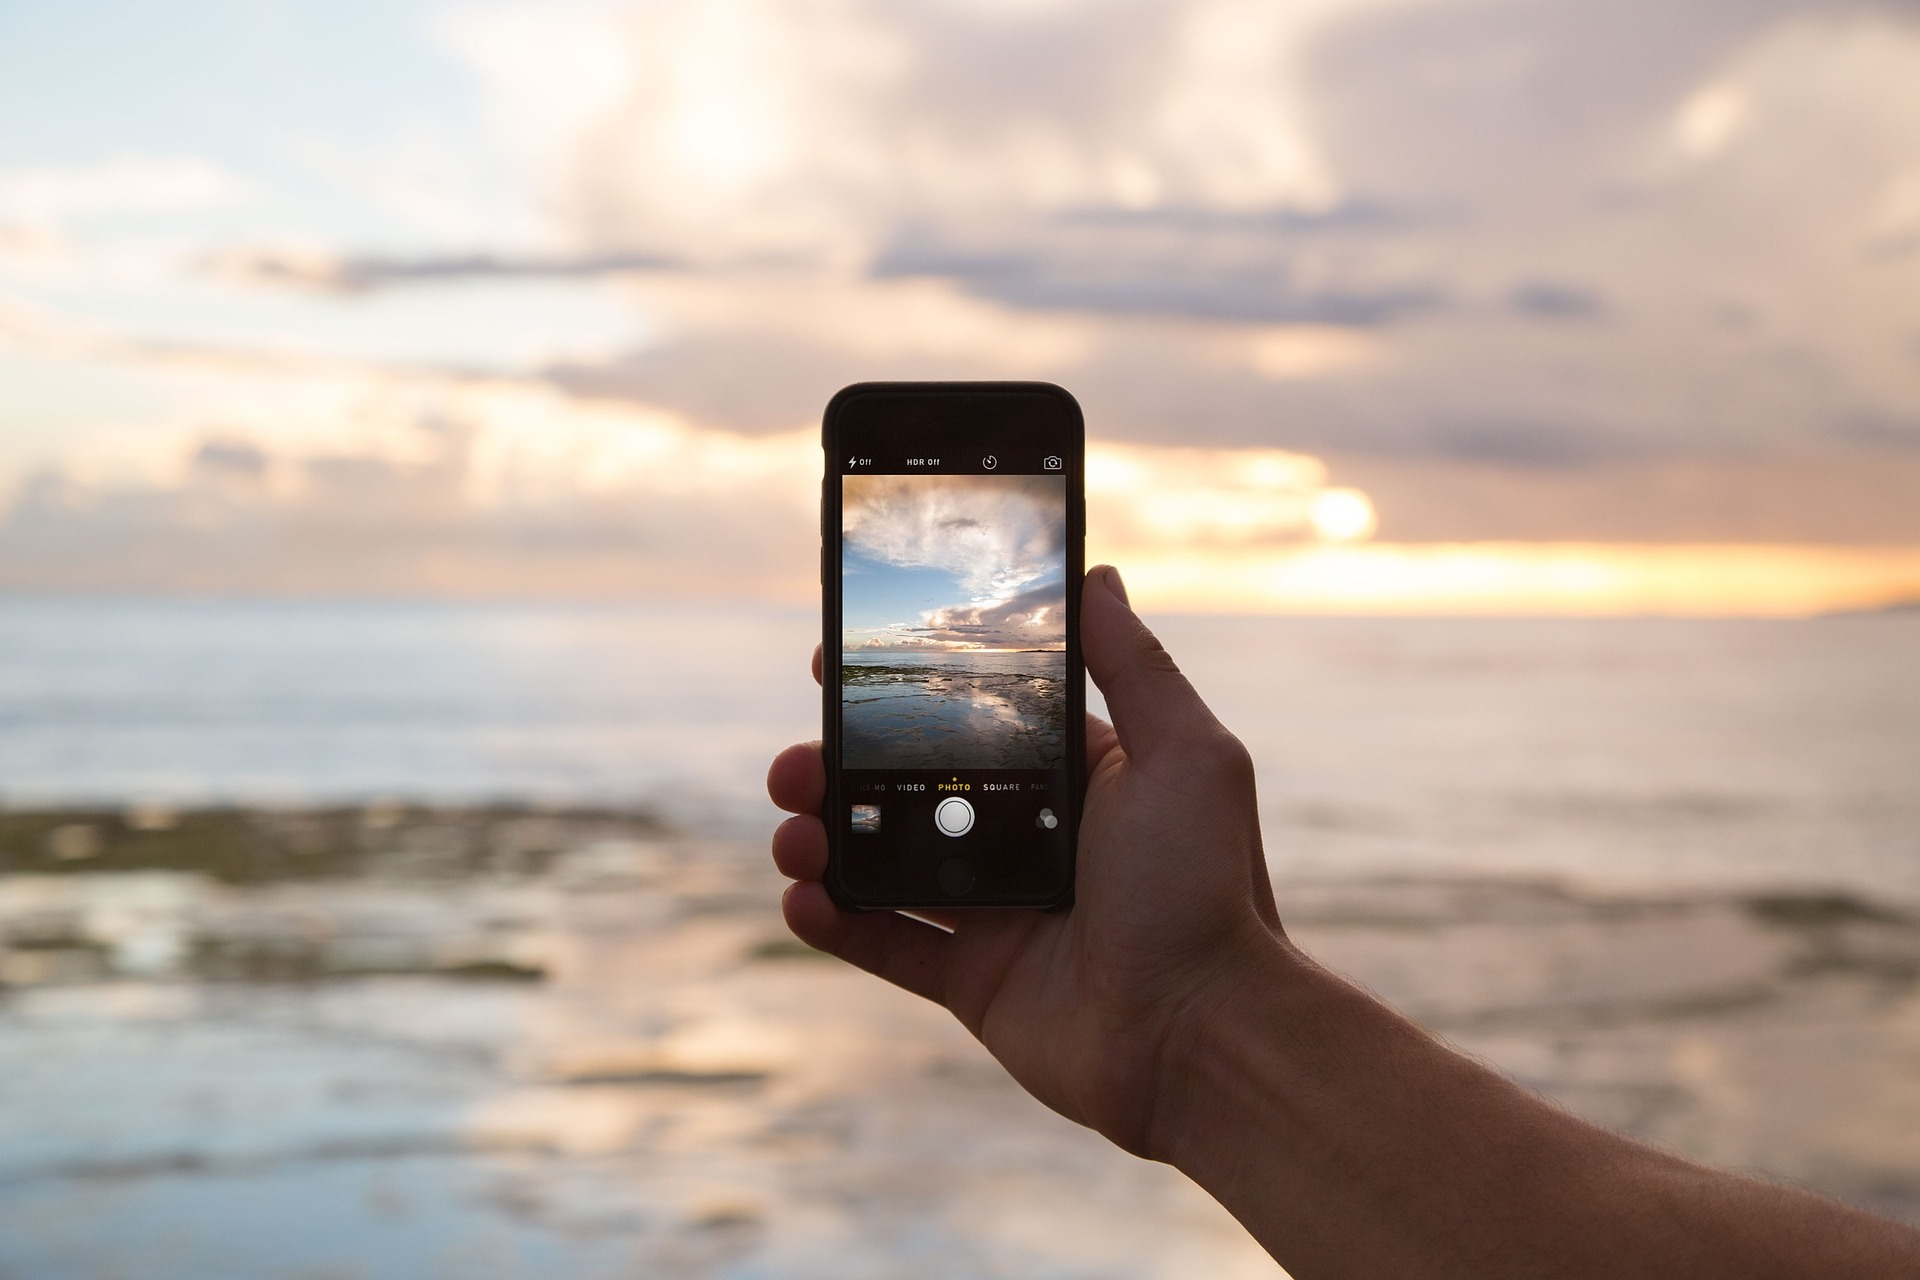 A hand holding a mobile phone taking a photo of a sunset over the ocean. Apps like Instagram encourage obsession with sharing content like this to the point that it may damage mental health.